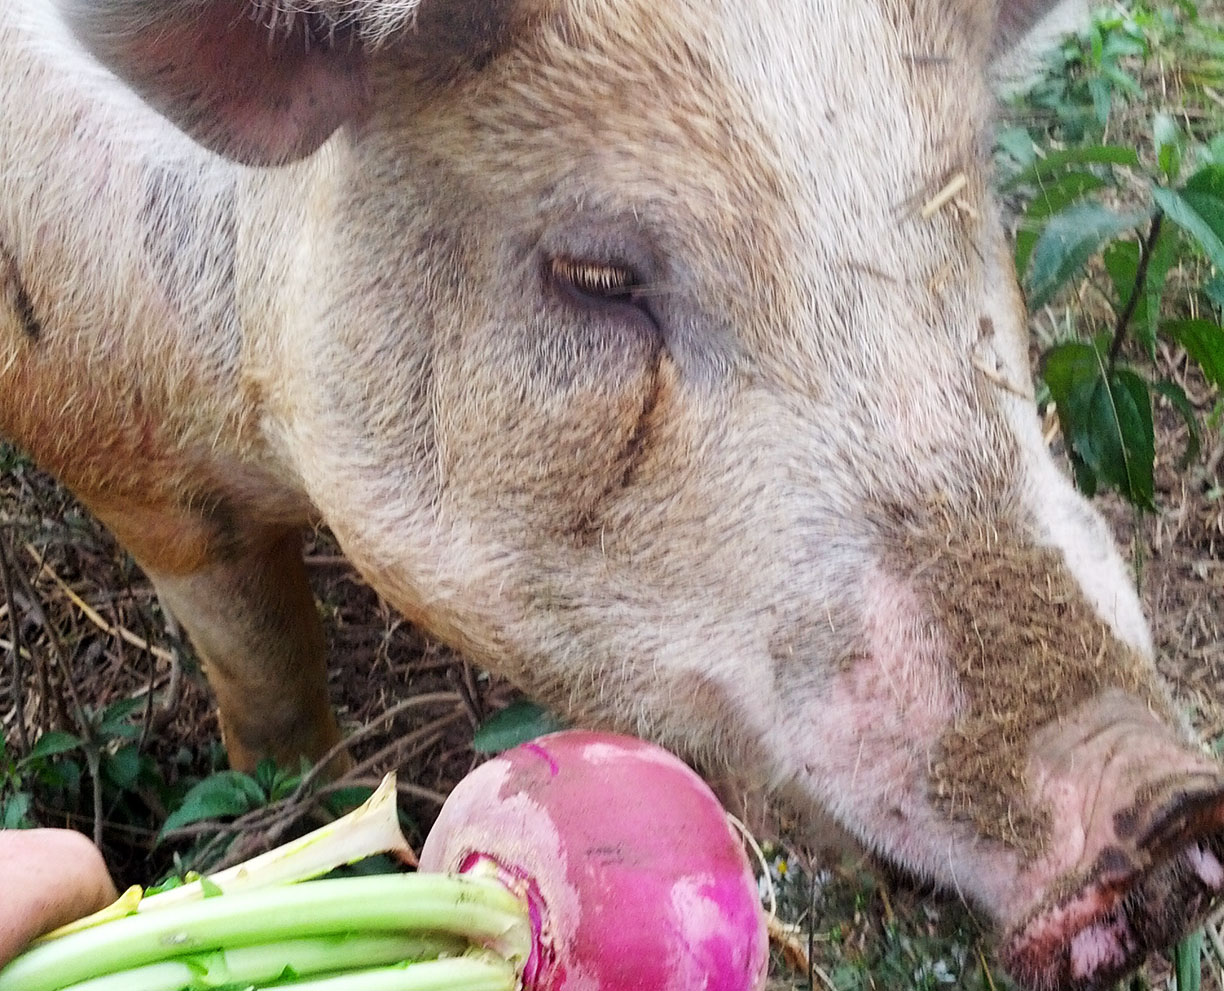 Let's All Eat Turnips: A Dancing Rabbit Update